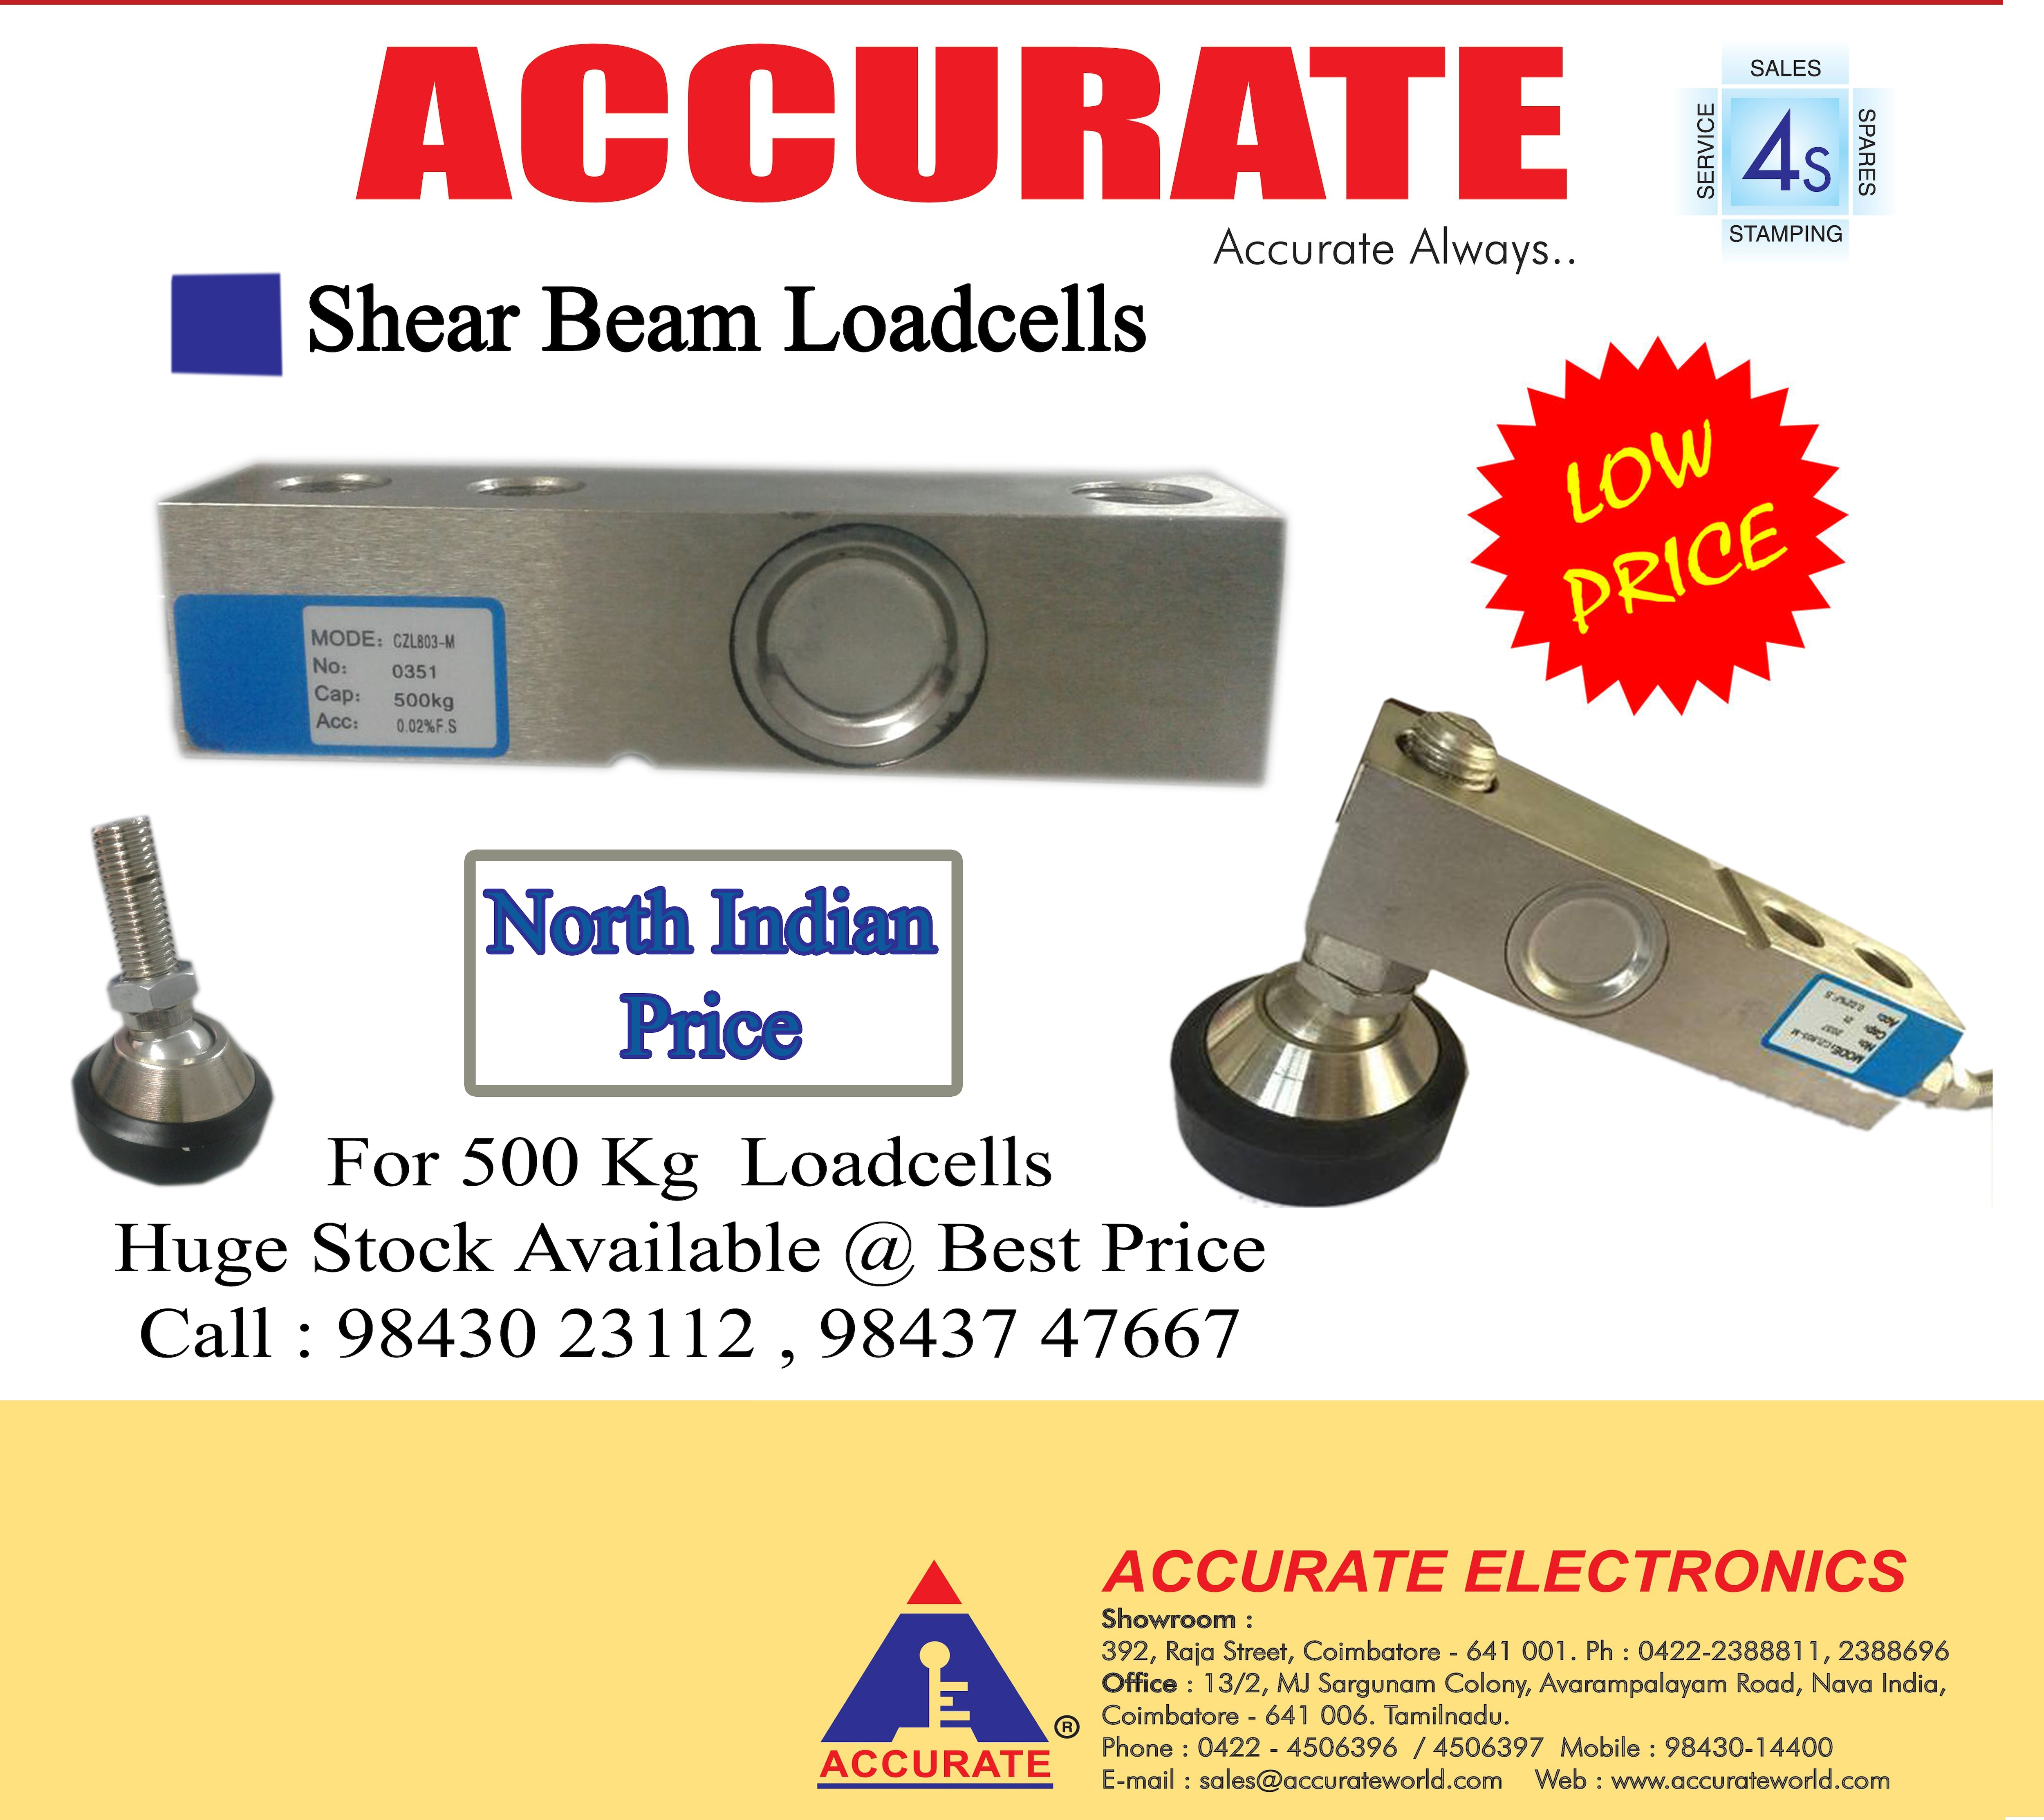 ACCURATE – Load Cells #Loadcell  #500KgLoadcell #ShearBeamLoadcells  #LowpriceLoadcells #Accurate #AccurateScales  #Accurateworld  Click here to know more : https://goo.gl/MGAeuK   Contact: 98430 23112 , 9843747667